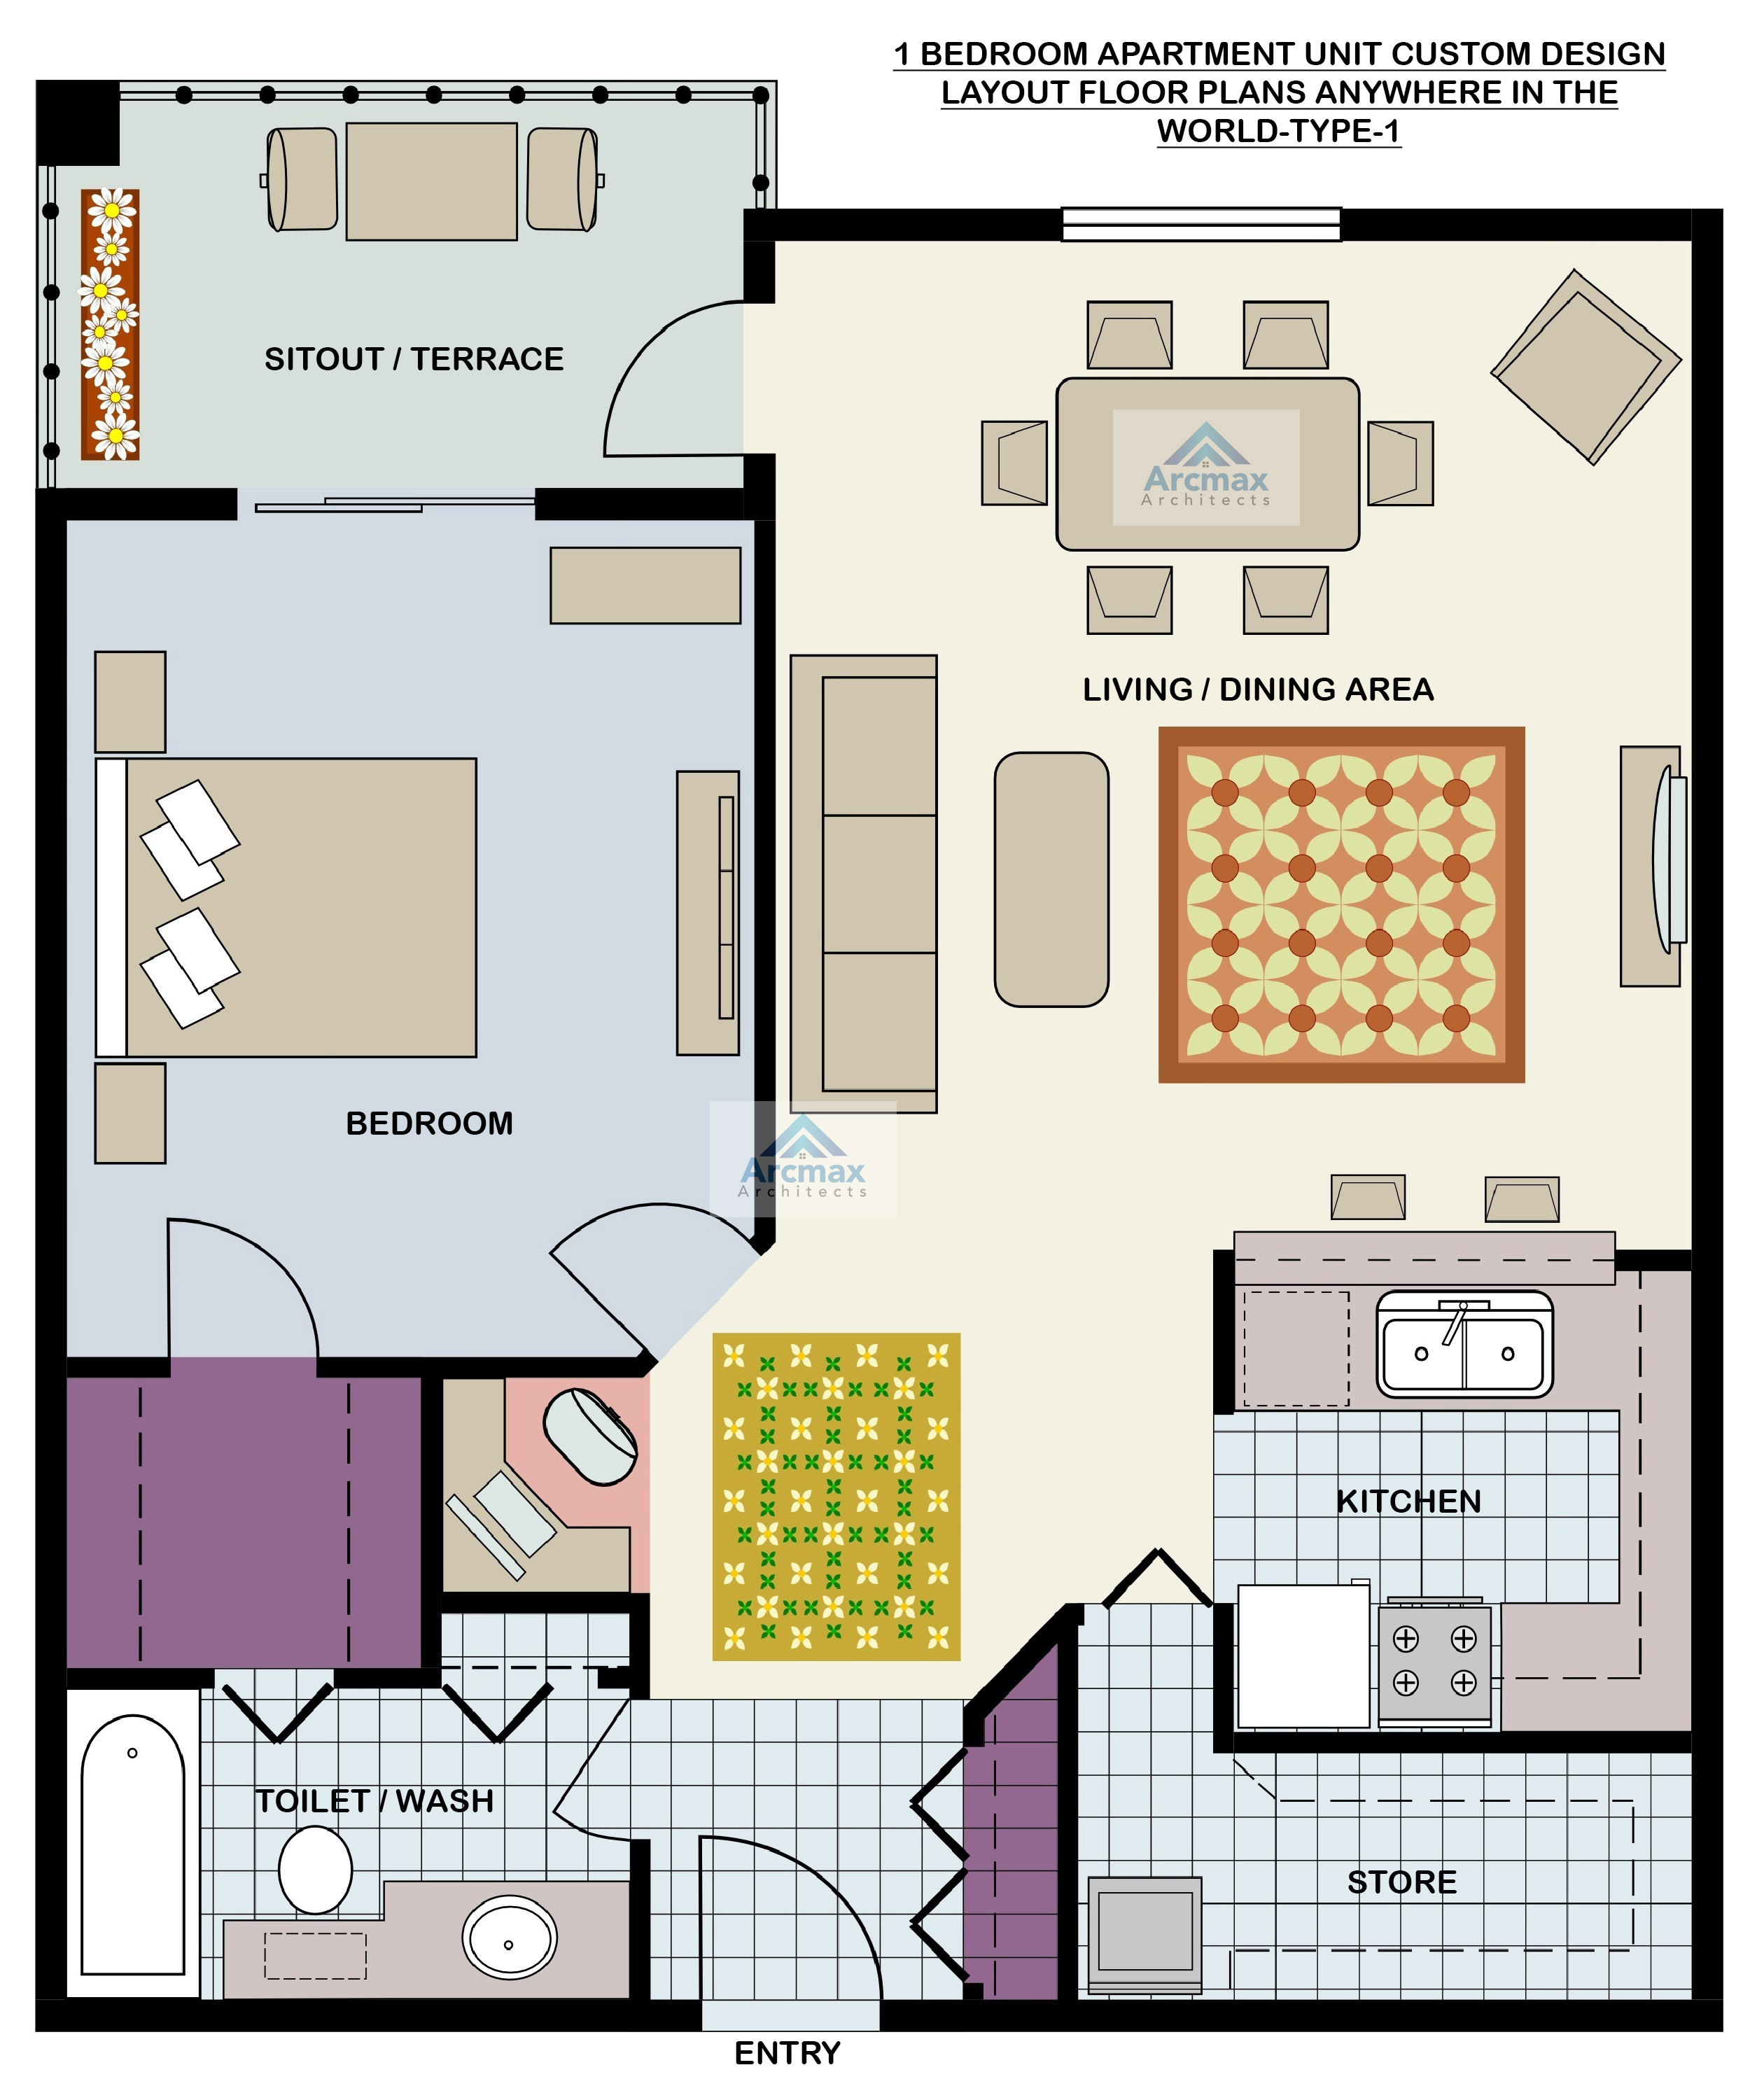 Low cost housing design home plans arcmax architects - Affordable three bedroom apartments ...